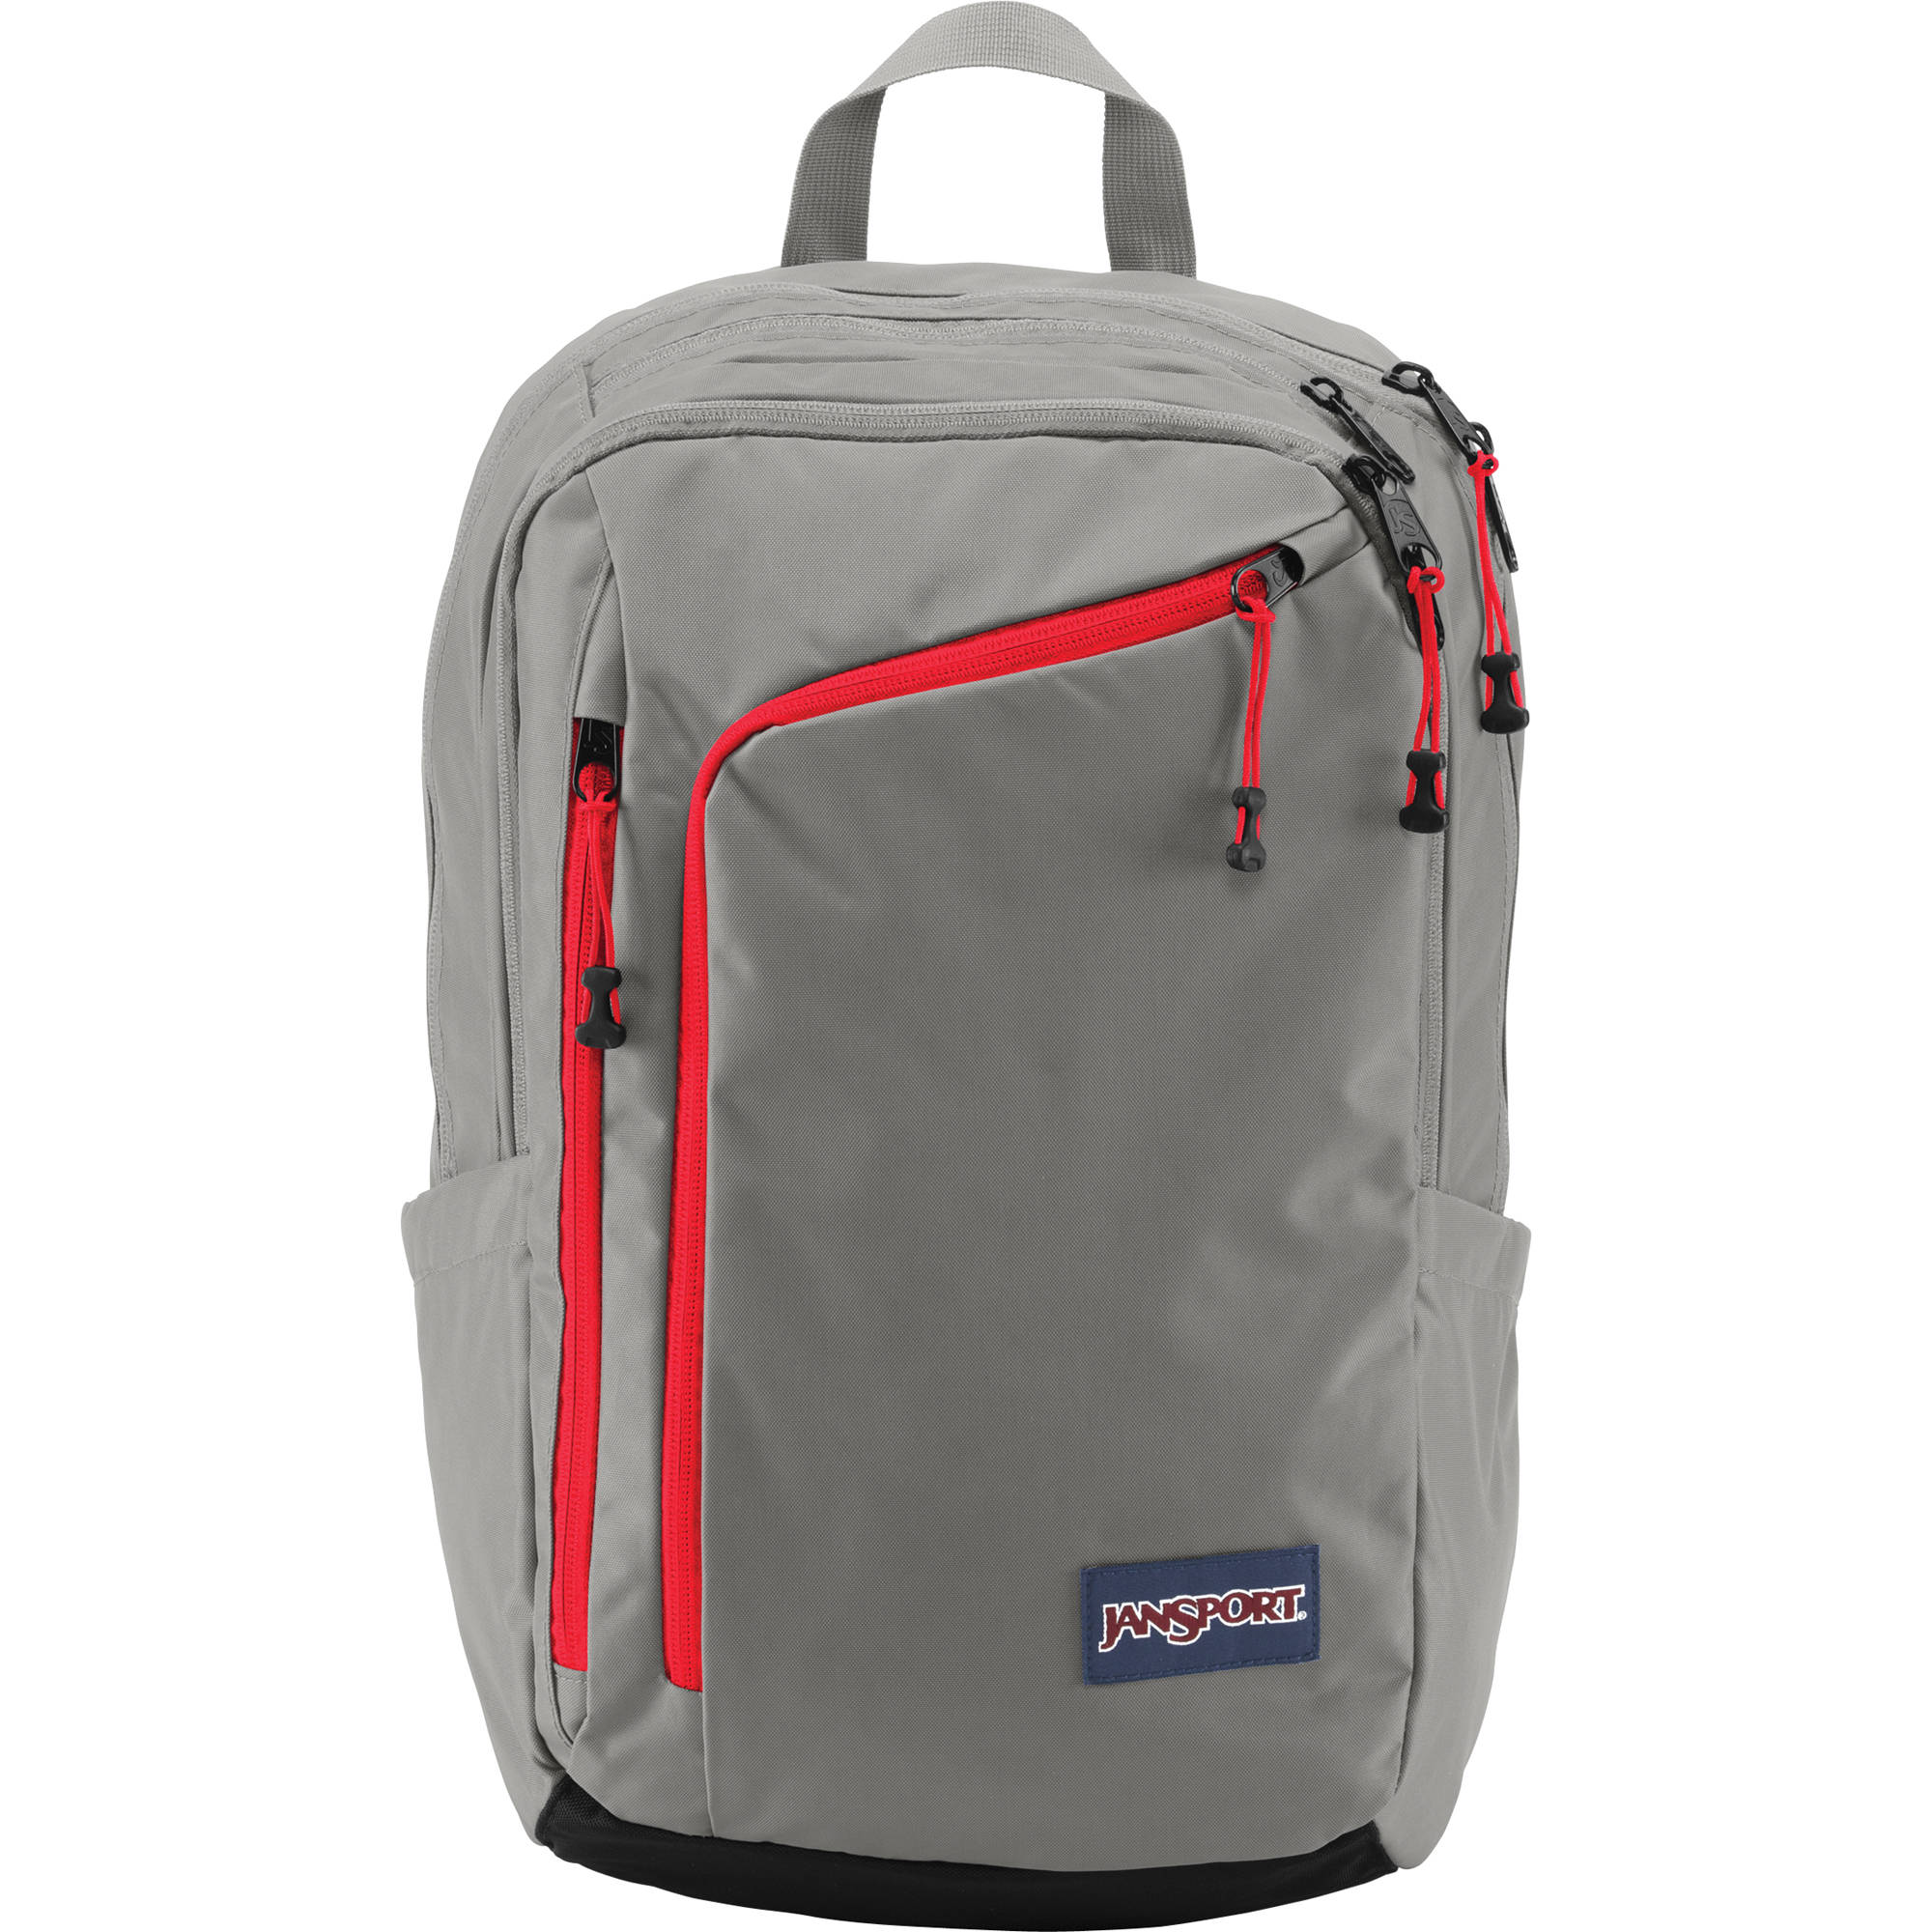 Jansport Gray Backpack CQ2daHc6